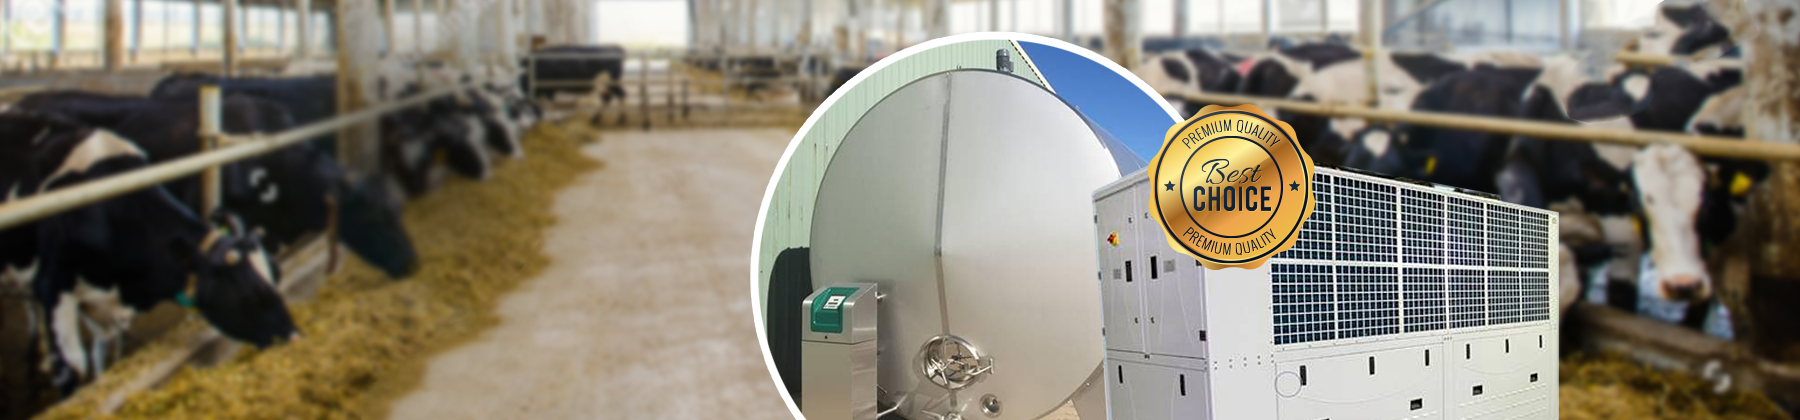 Specialized in Chillers & Milk Vats